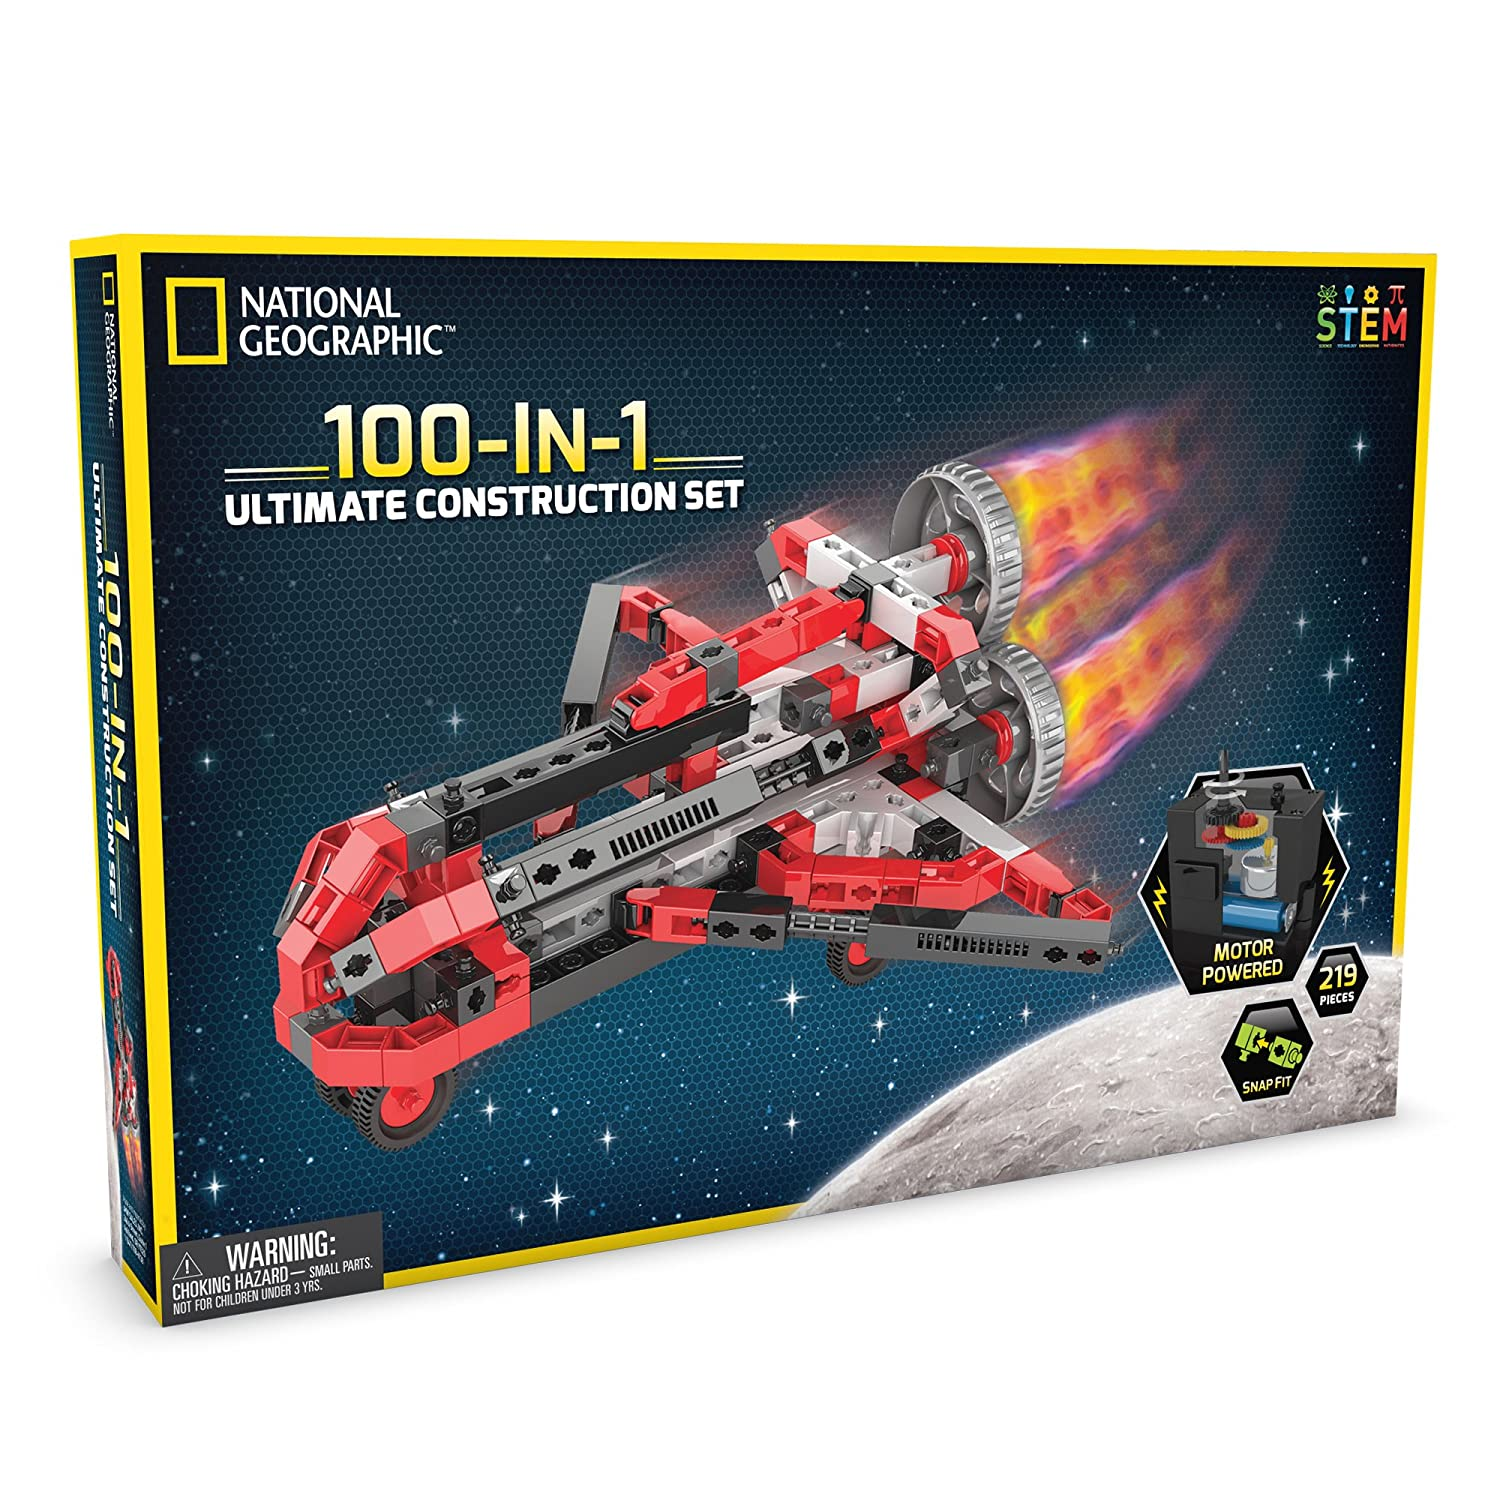 image of 100-in-1 National Geographic construction set for boys